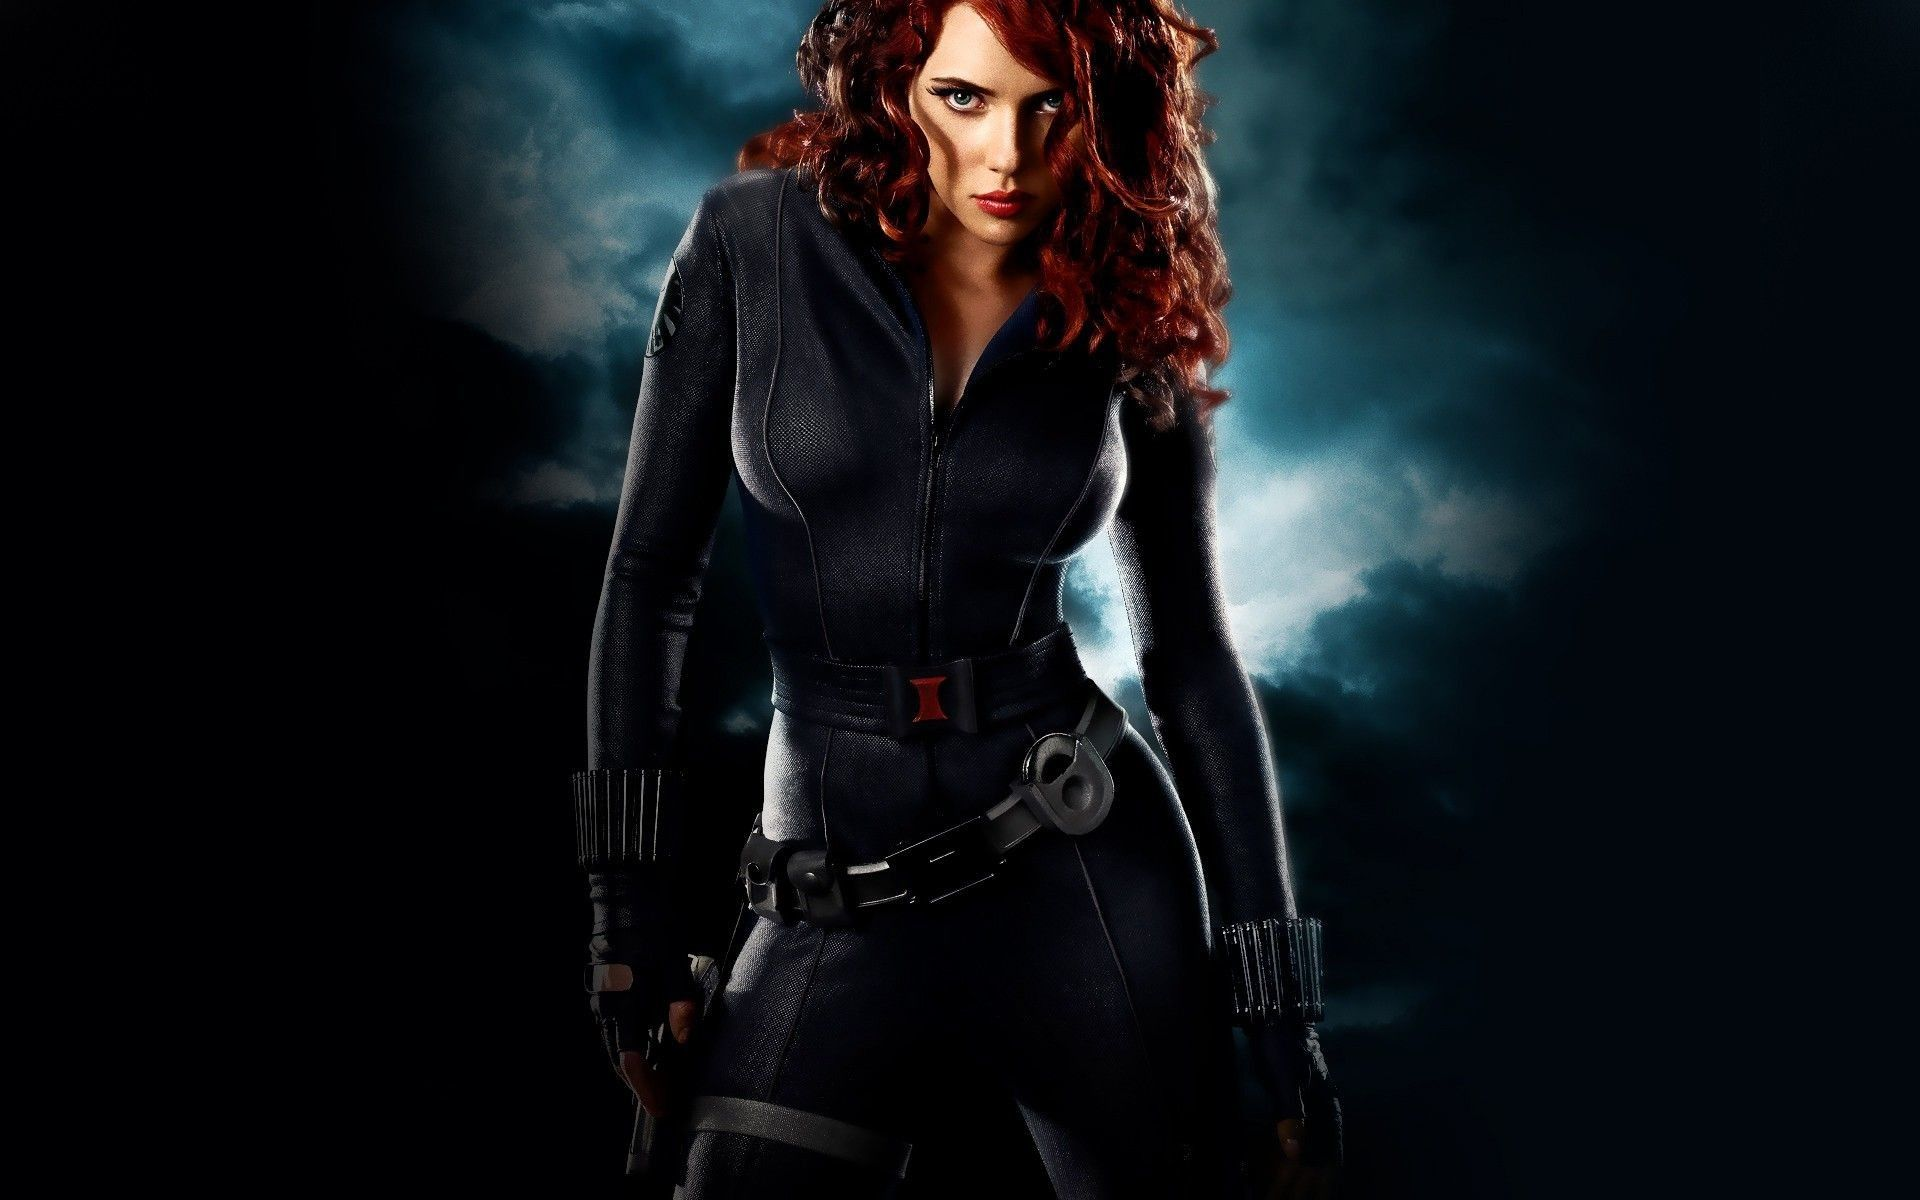 Scarlett Johansson Black Widow Wallpapers Top Free Scarlett Johansson Black Widow Backgrounds Wallpaperaccess